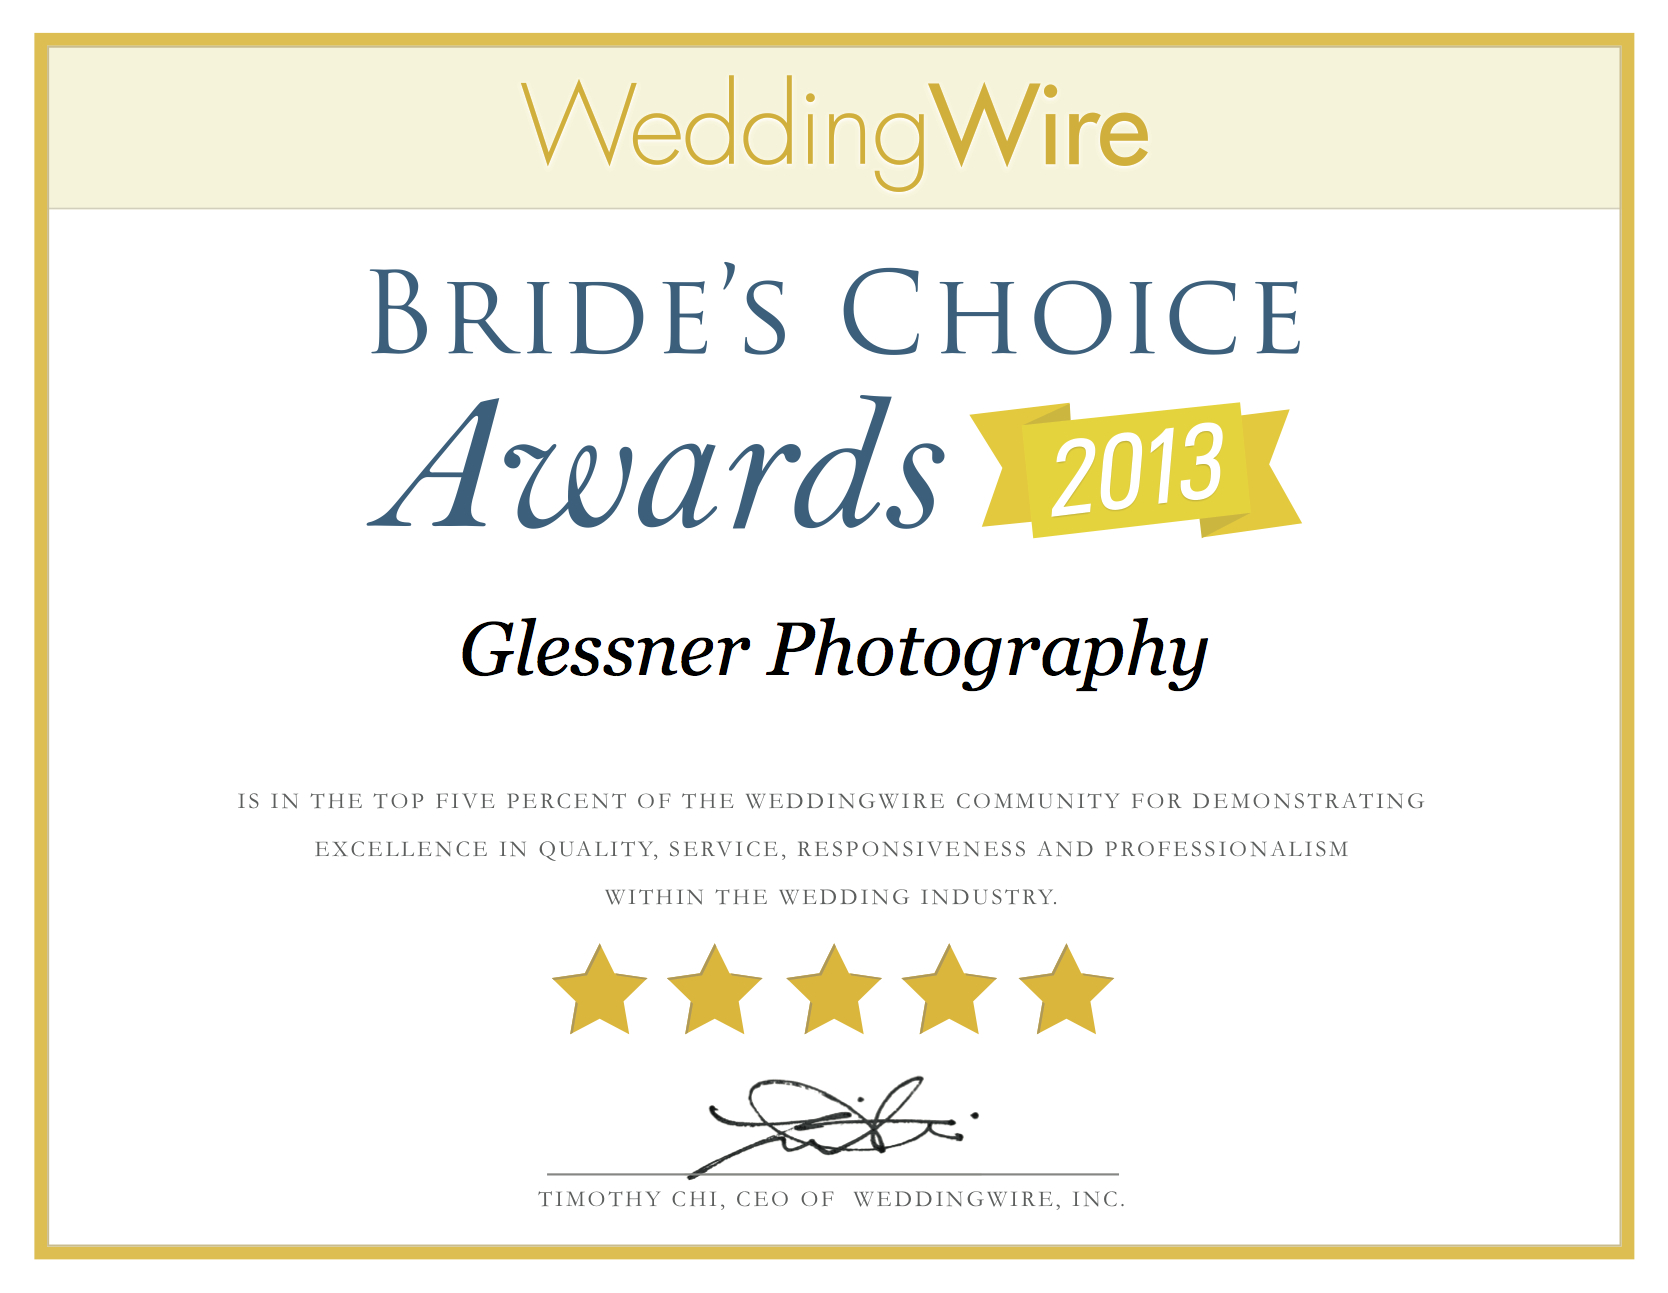 WeddingWire Bride's Choice 2013.jpg